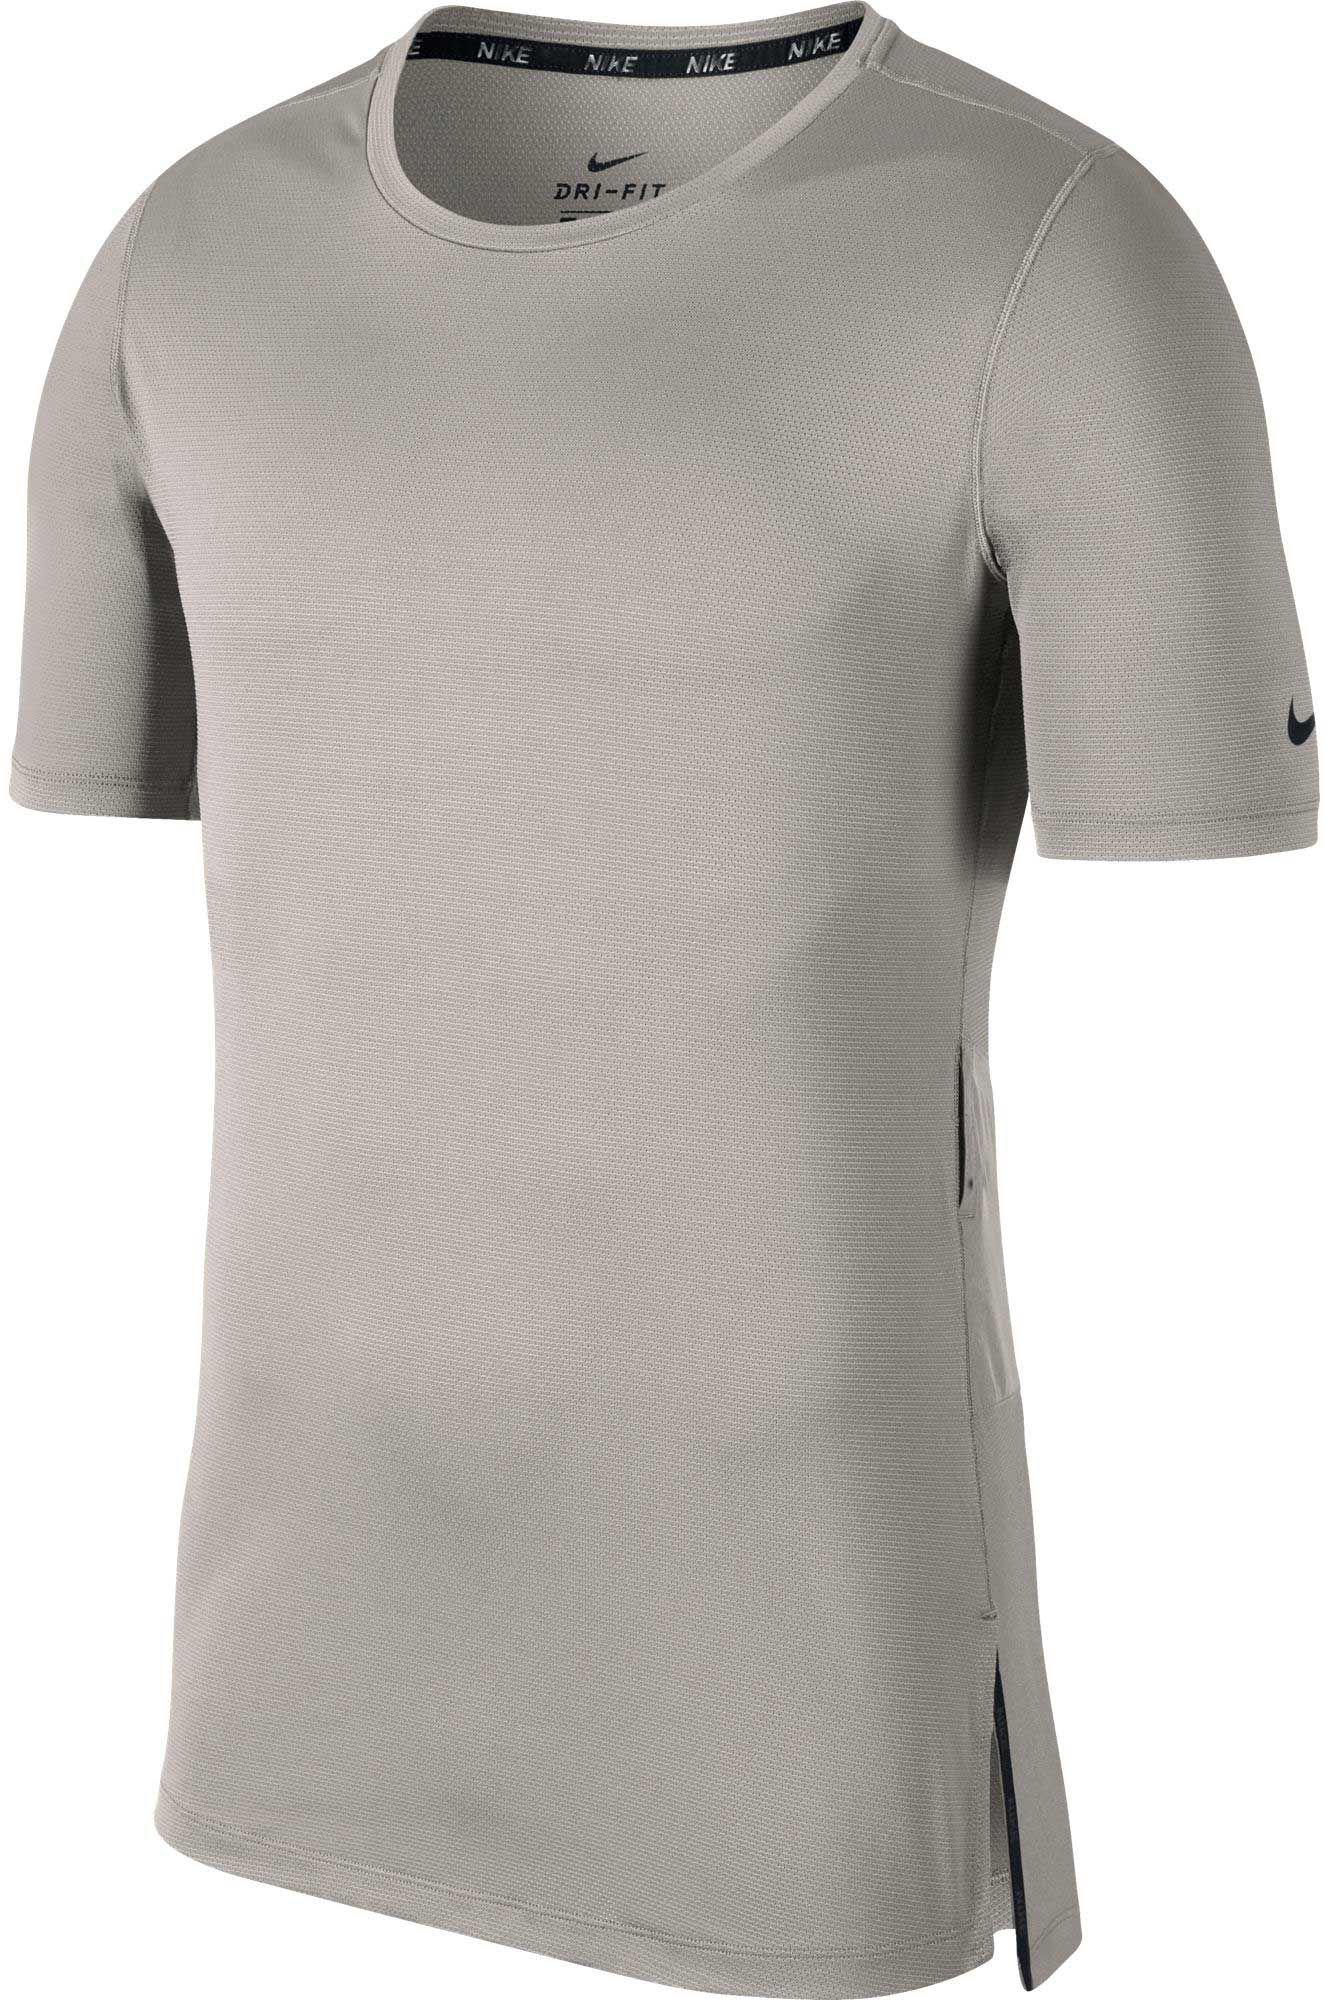 933e63576dda Nike - Multicolor Modern Utility Fitted Training T-shirt for Men - Lyst